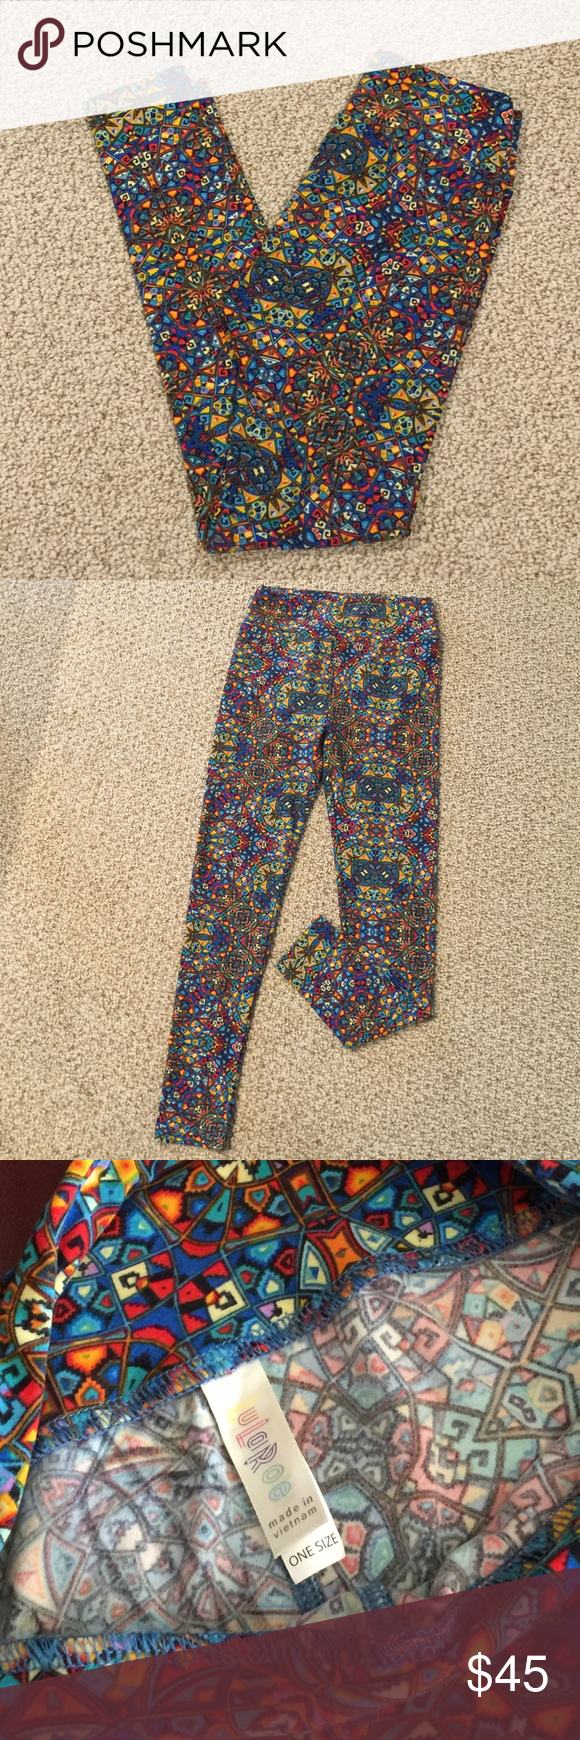 LuLaRoe Multi Colored Print Unicorn O S Leggings Buttery Soft With A Gorgeous